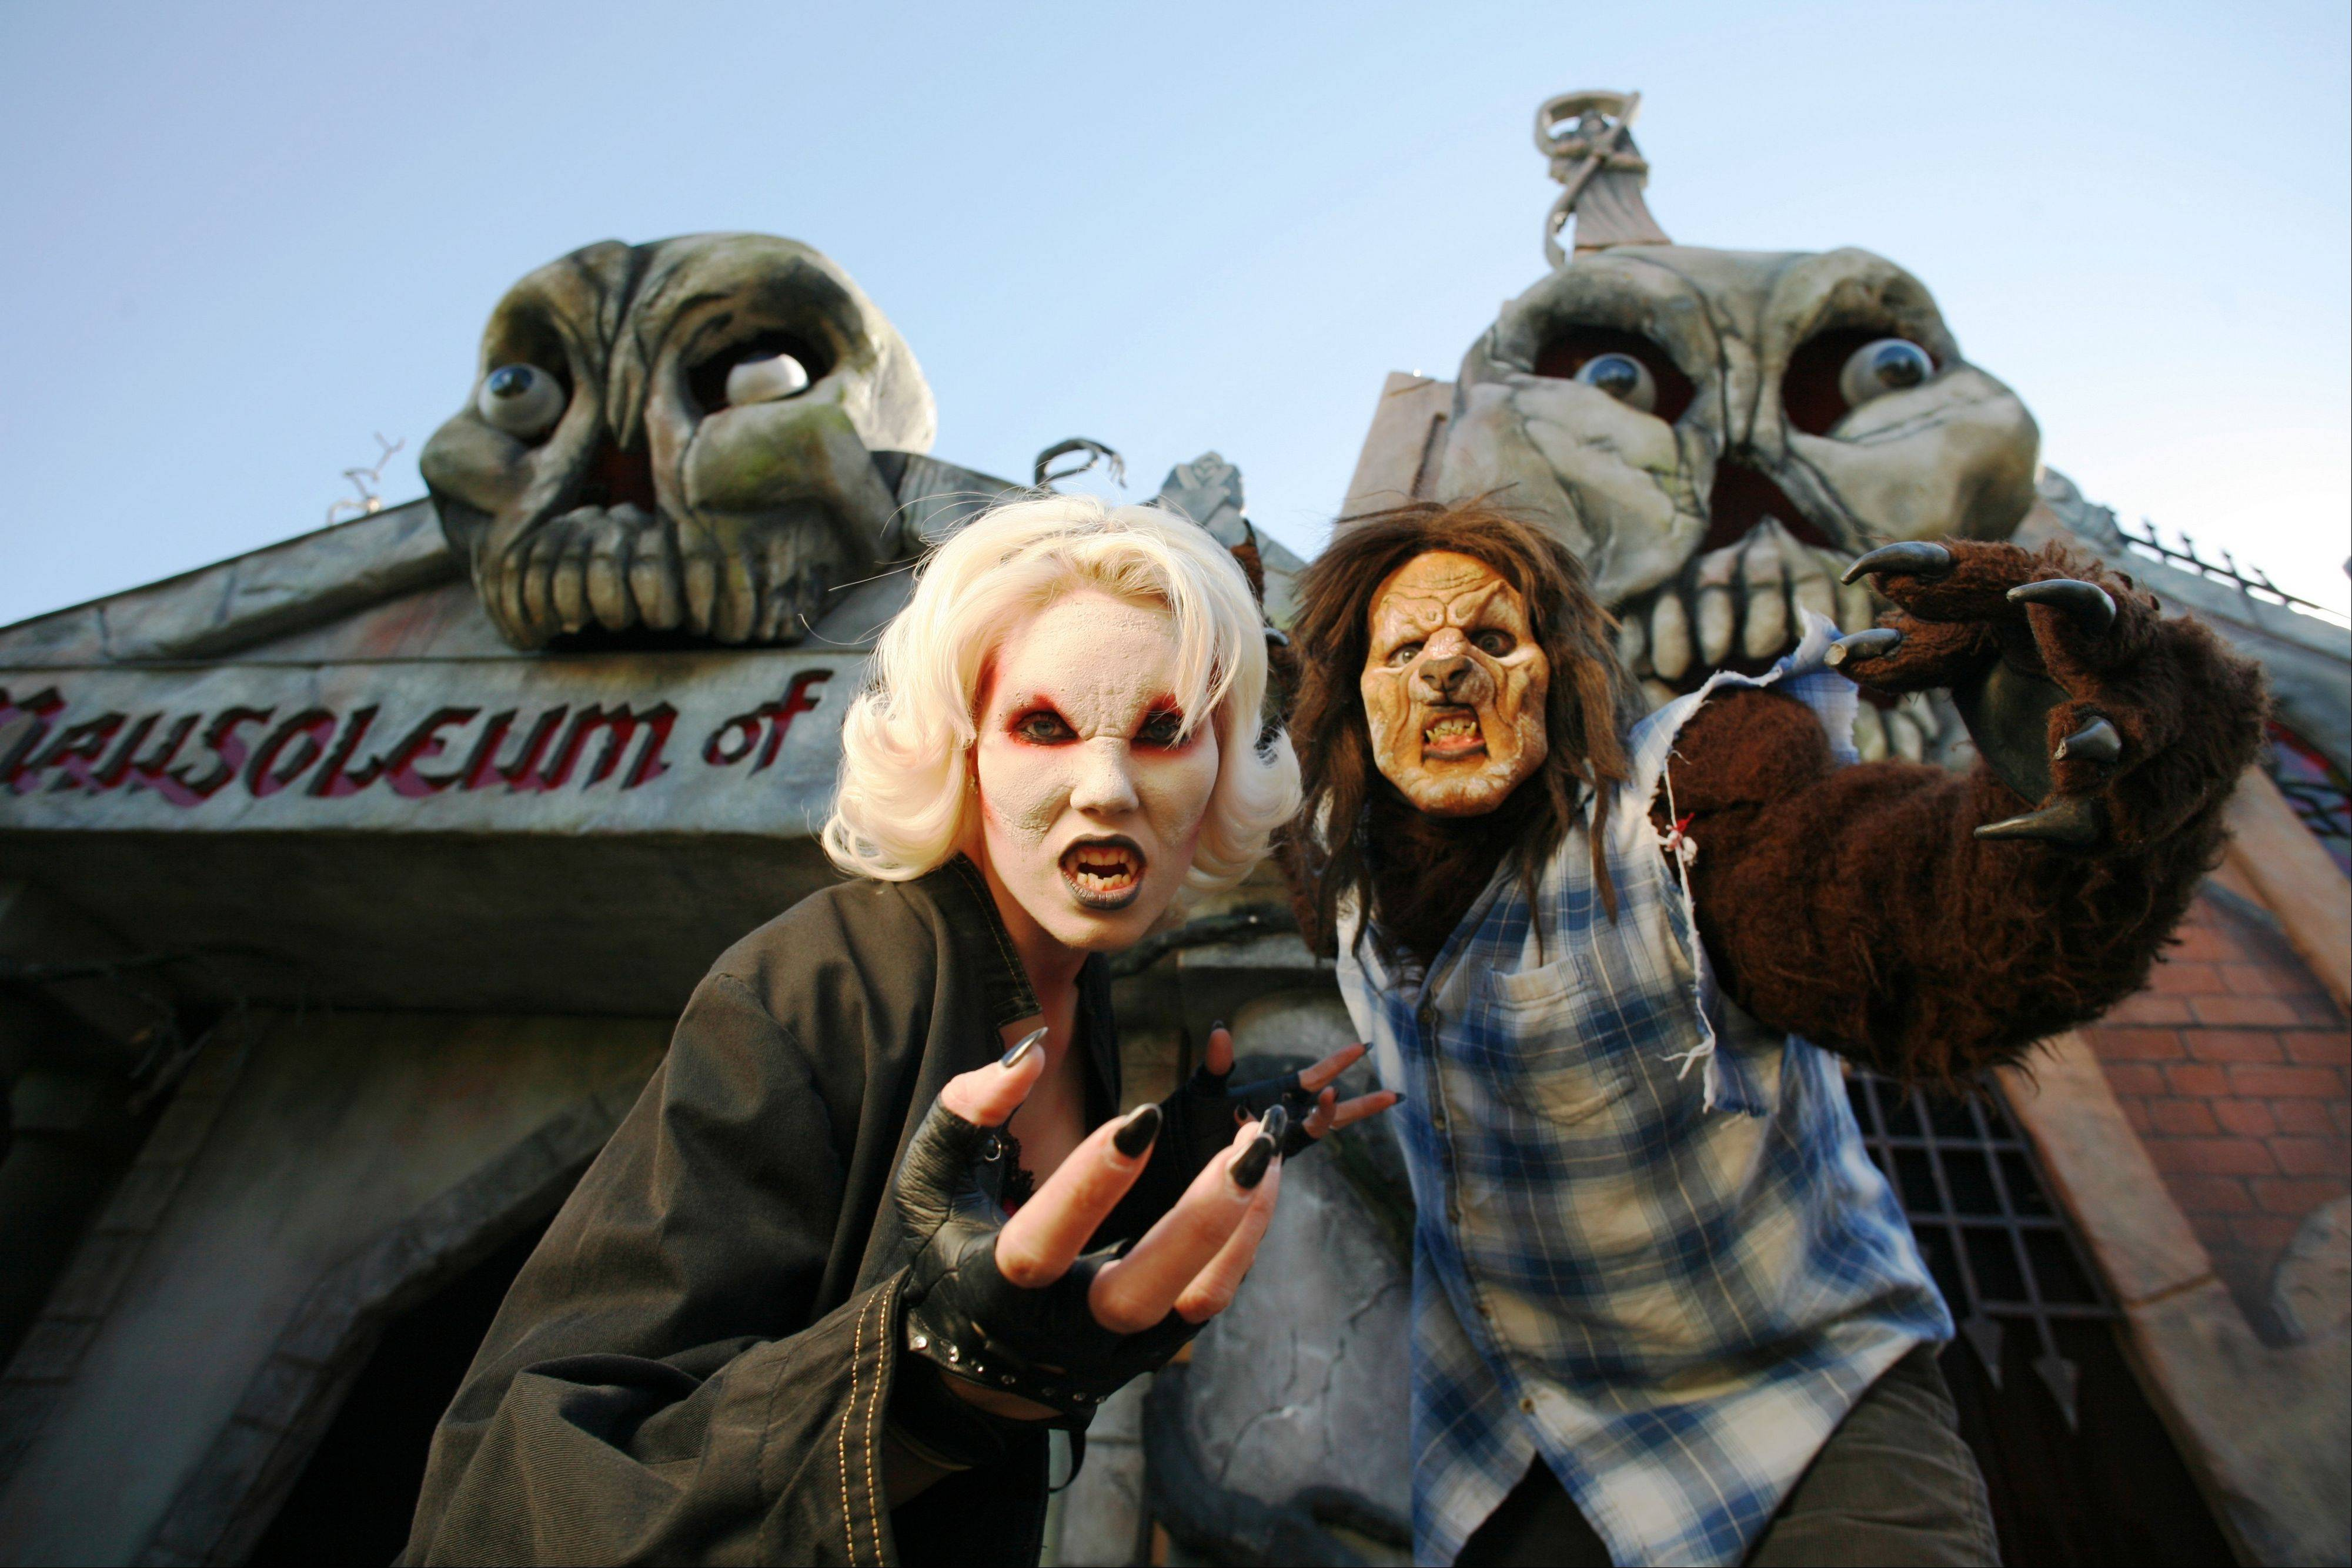 $START_URL$Great America ;http://www.sixflagsjobs.com/$STOP_URL$needs actors for its annual Fright Fest. Auditions will take place from 2 to 8 p.m. Friday, Aug 19, at Key Lime Cove, 1700 Nations Drive in Gurnee.